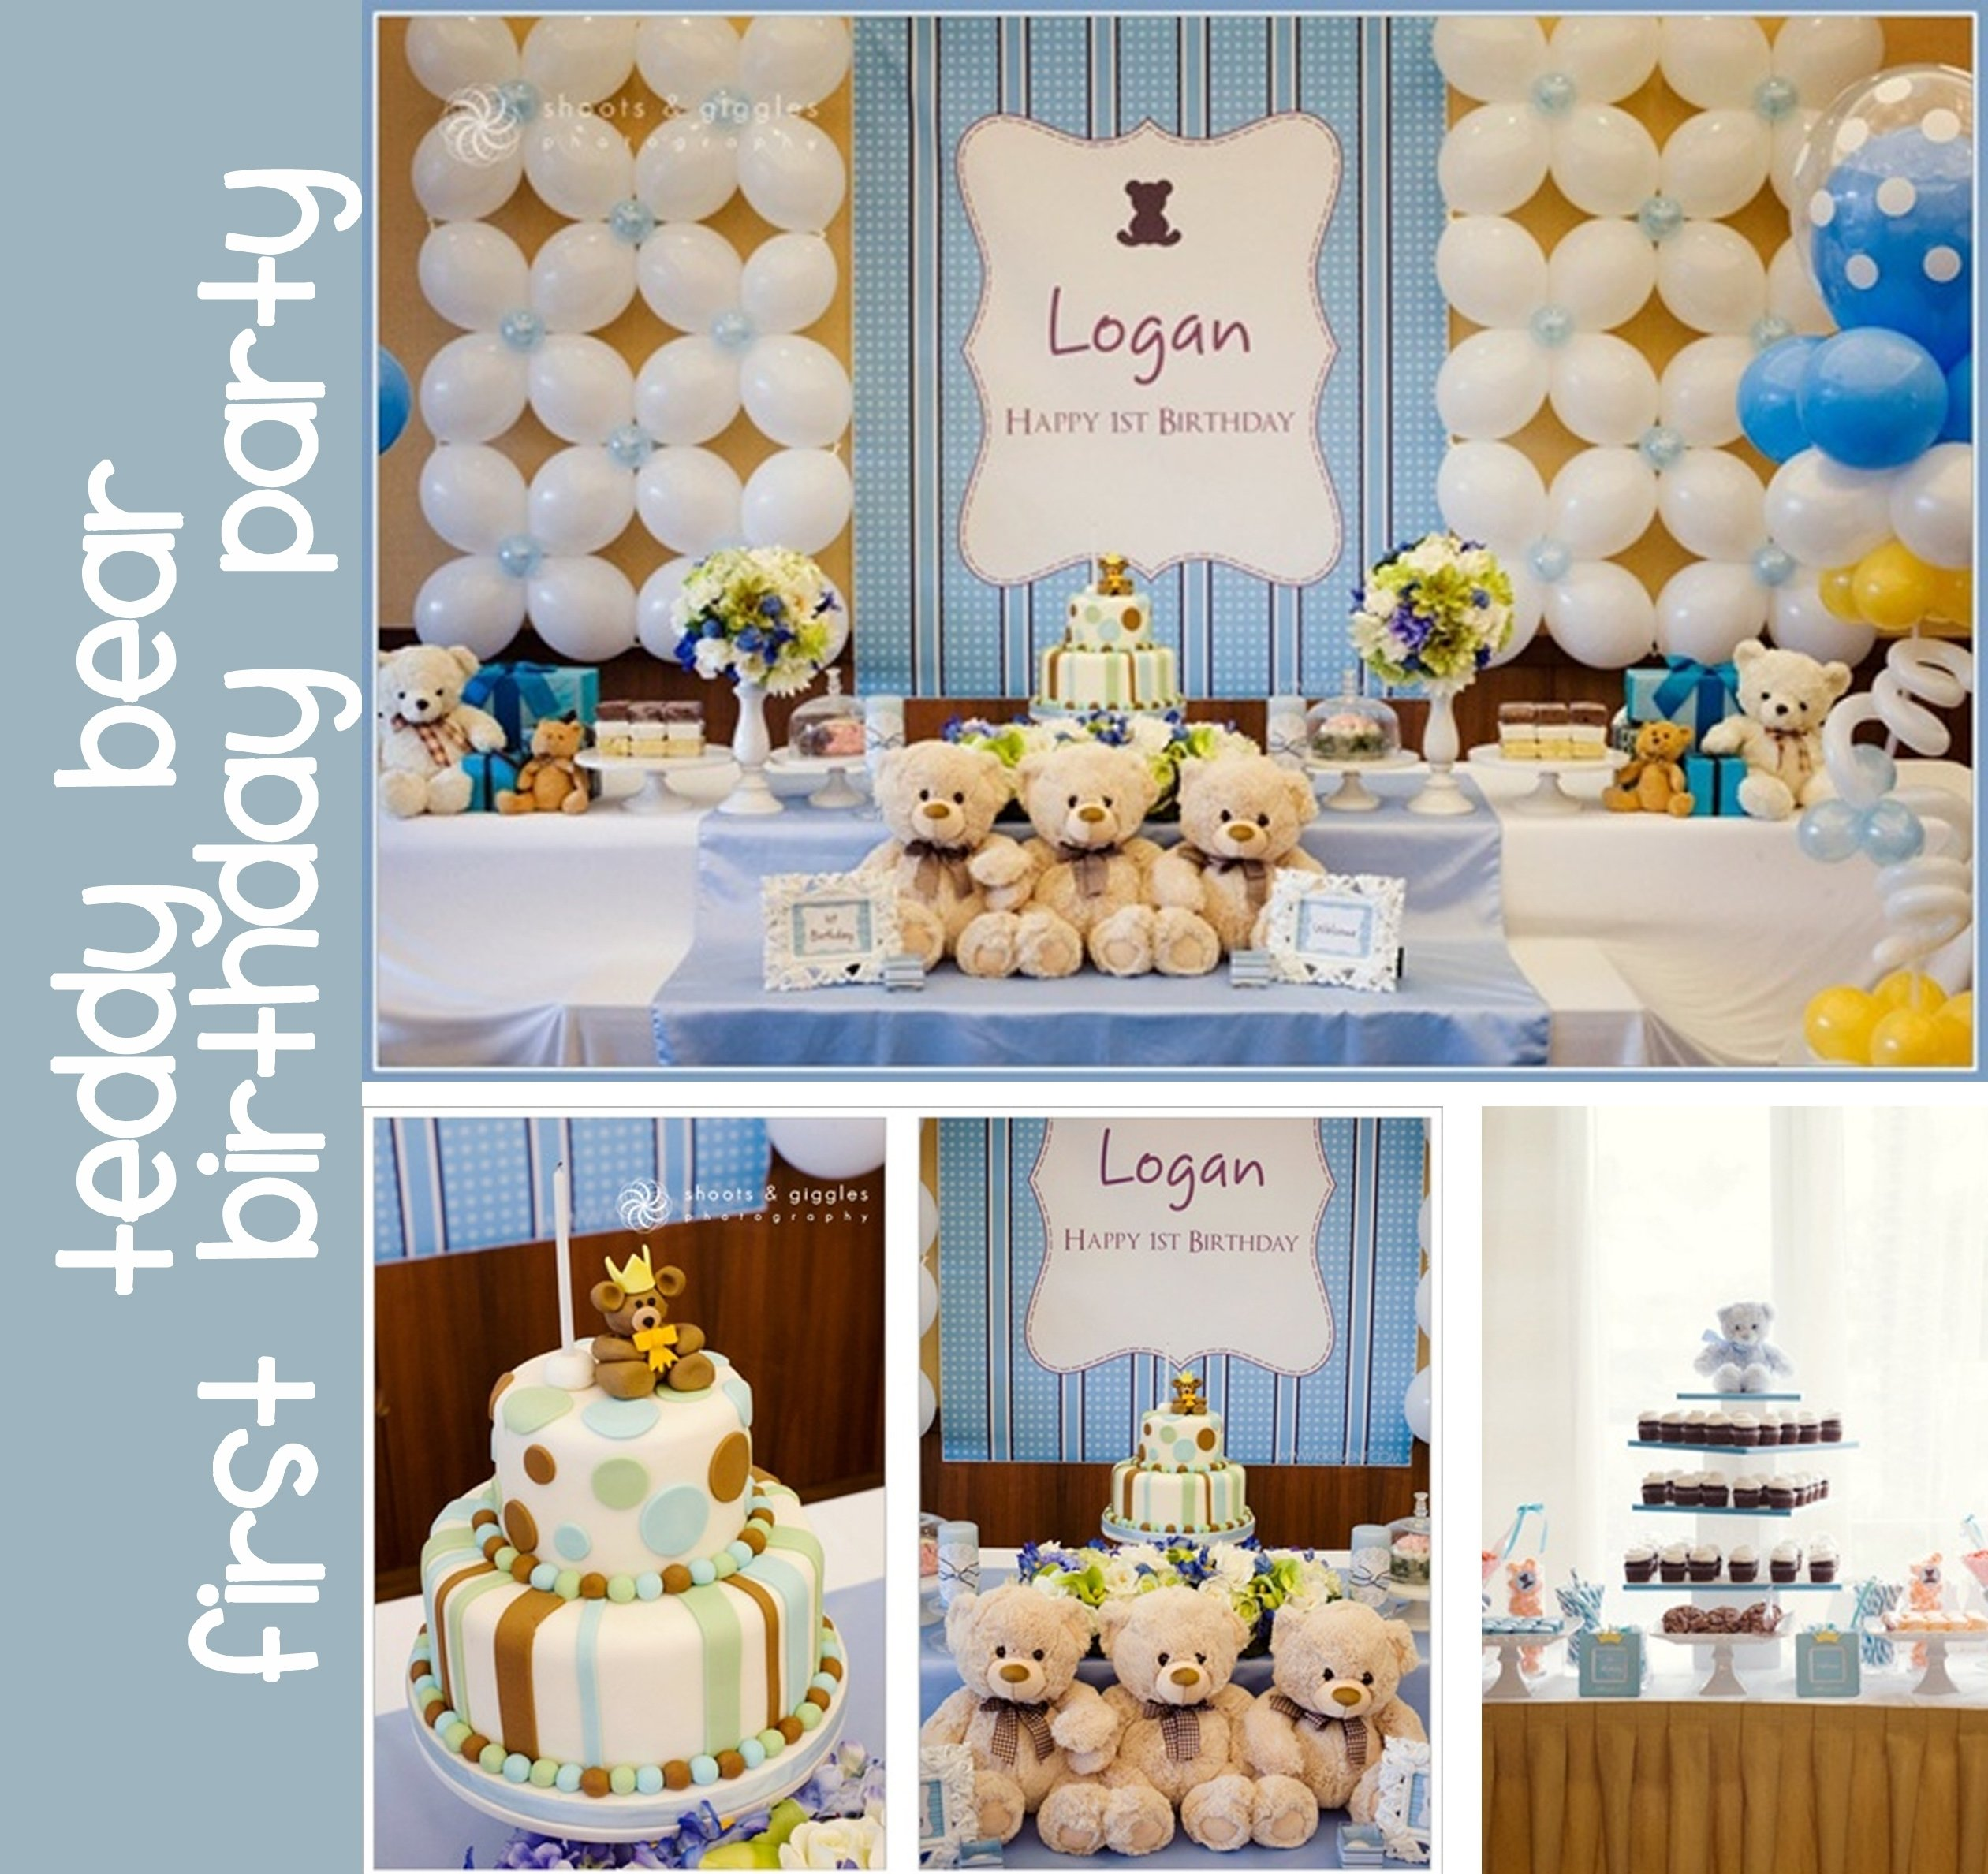 10 Ideal One Year Old Birthday Party Ideas For Boys